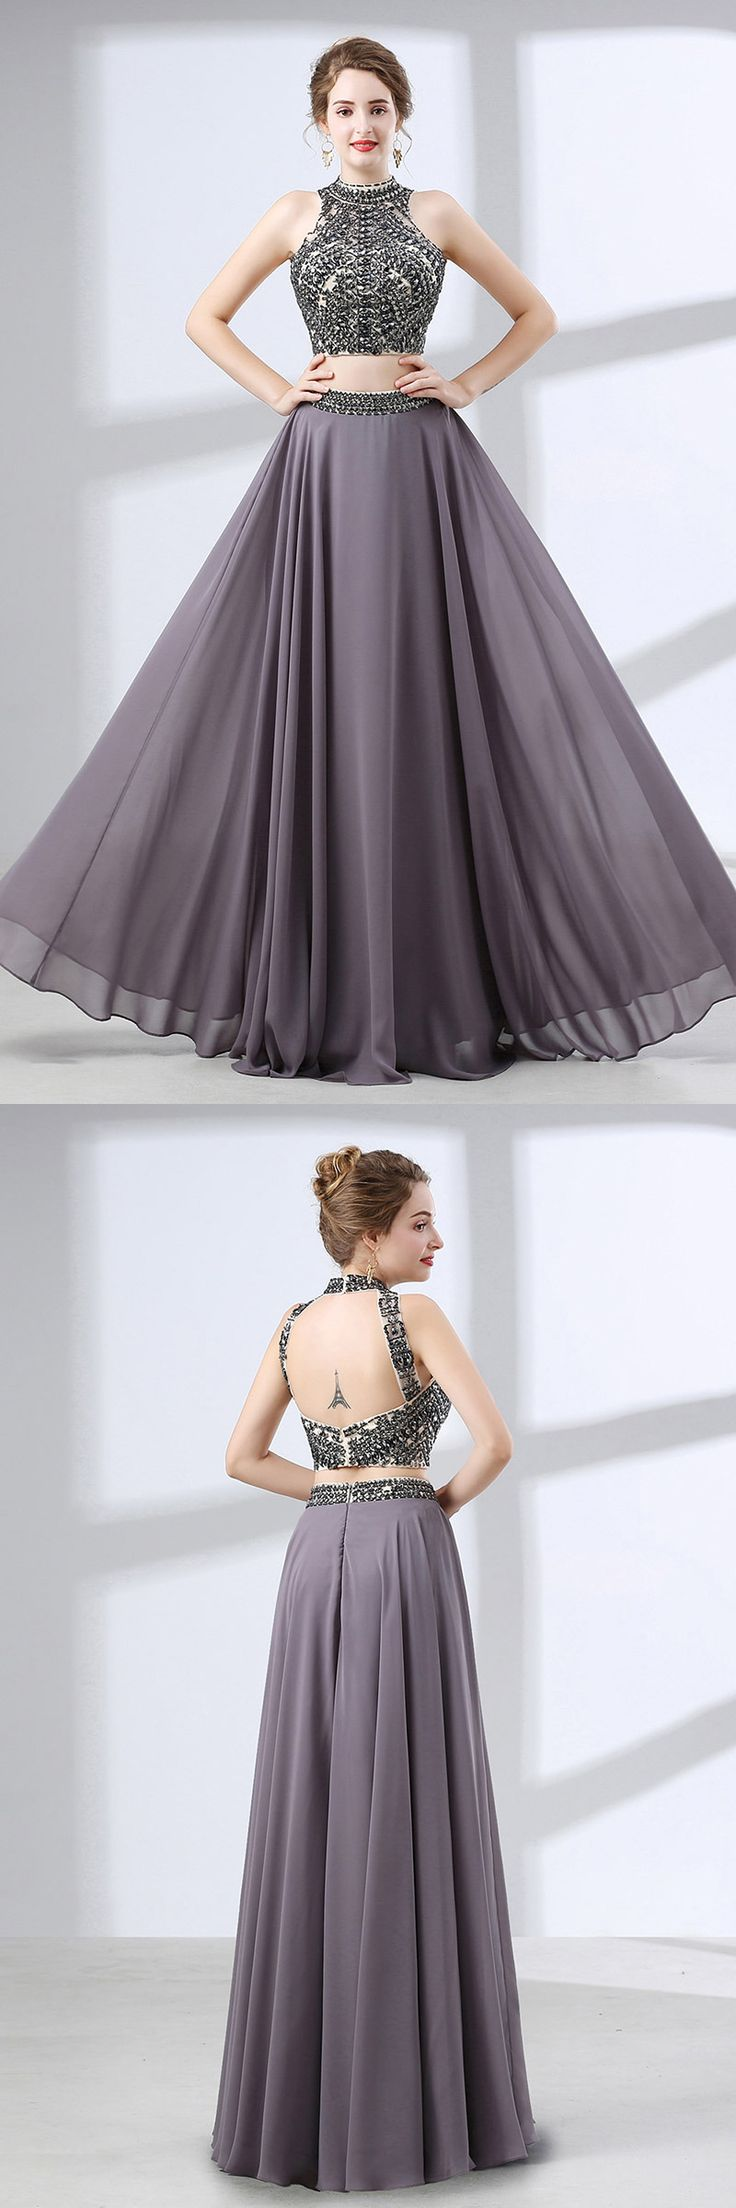 Only $139, Evening Dresses Two Piece Vintage Grey Formal Dress Long With Crystal Halter Top #CH6645 at #GemGrace. View more special Special Occasion Dresses,Prom Dresses,Evening Dresses now? GemGrace is a solution for those who want to buy delicate gowns with affordable prices, a solution for those who have unique ideas about their gowns. 2018 new arrived, shop now to get $10 off!